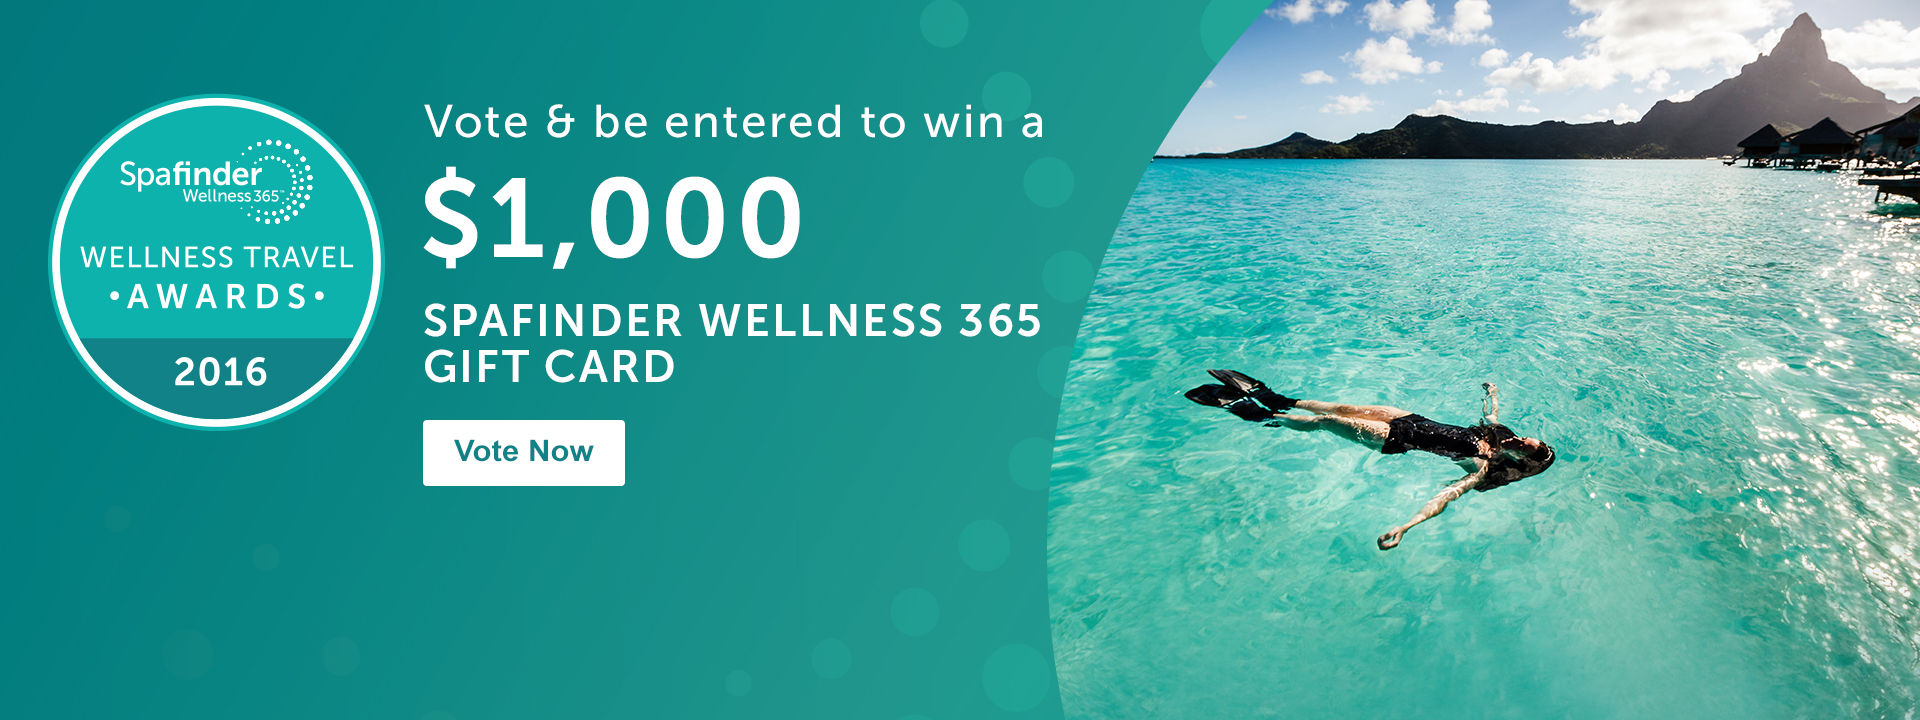 Vote & be entered to win a $1000 Spafinder Wellness 365 Gift Card - Vote Now